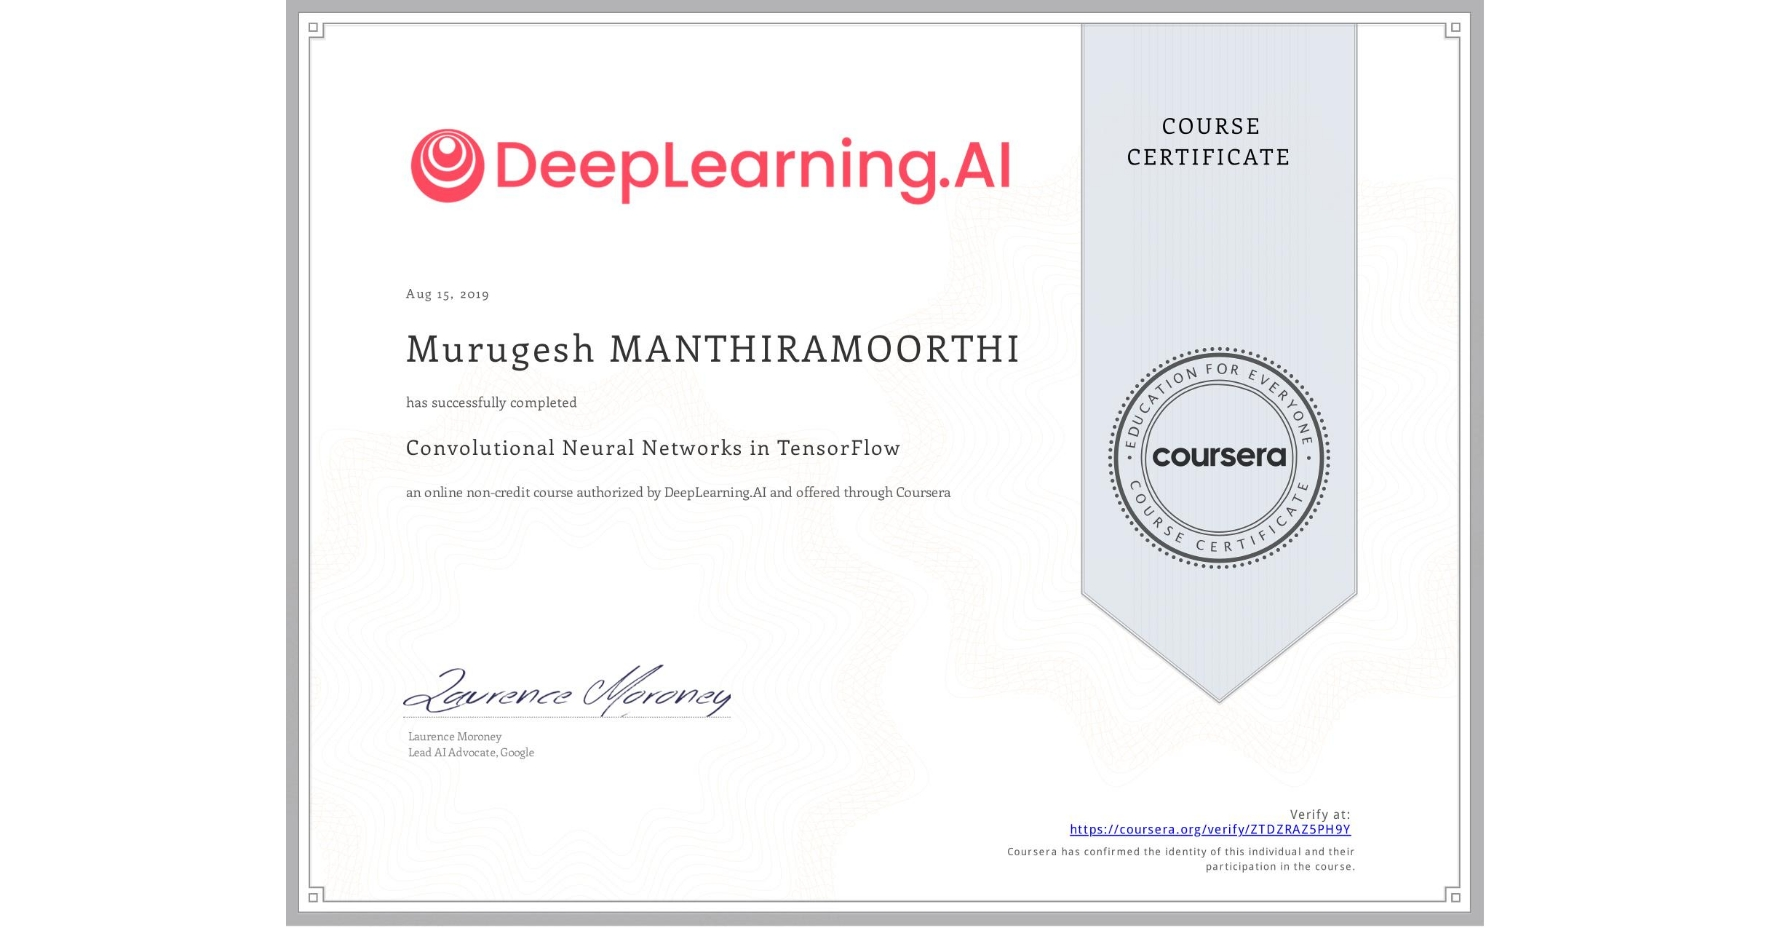 View certificate for Murugesh Manthiramoorthi, Convolutional Neural Networks in TensorFlow, an online non-credit course authorized by DeepLearning.AI and offered through Coursera